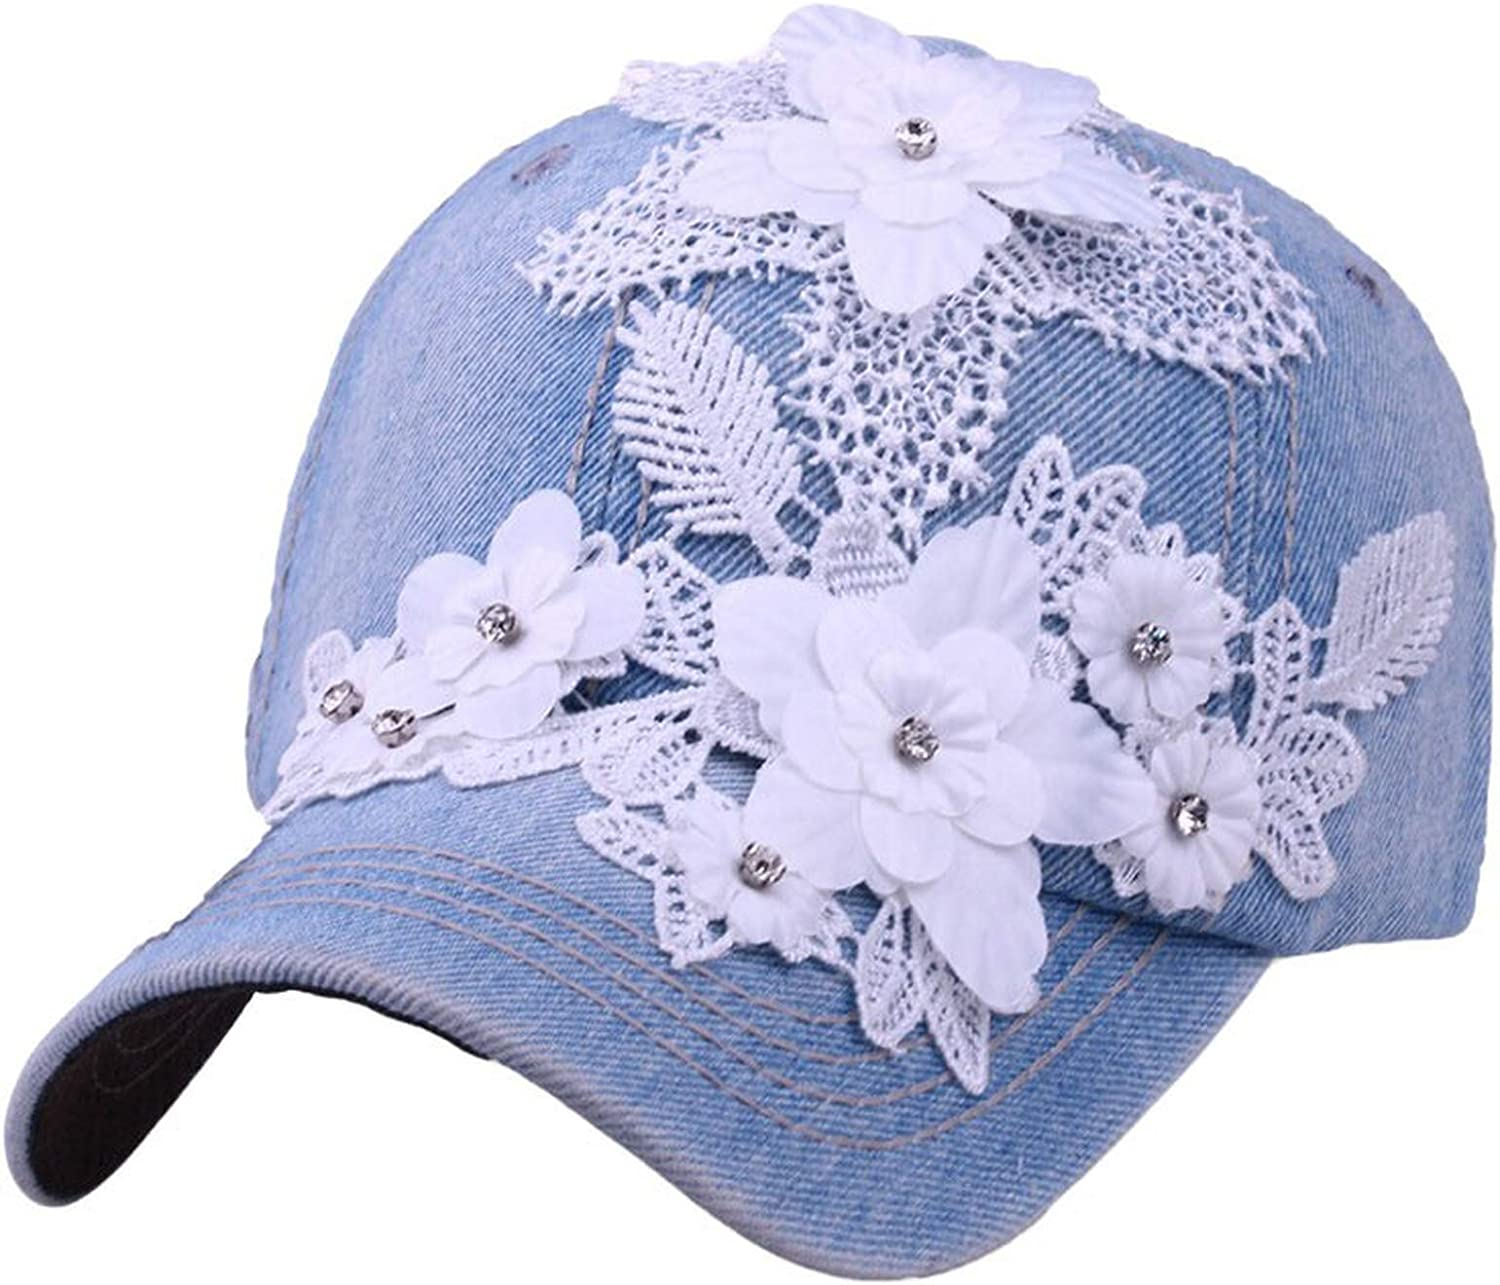 Women Men Adjustable Hat Flower with Lace Cap Rhinestone Denim Baseball Mesh Cap Hats Casquette